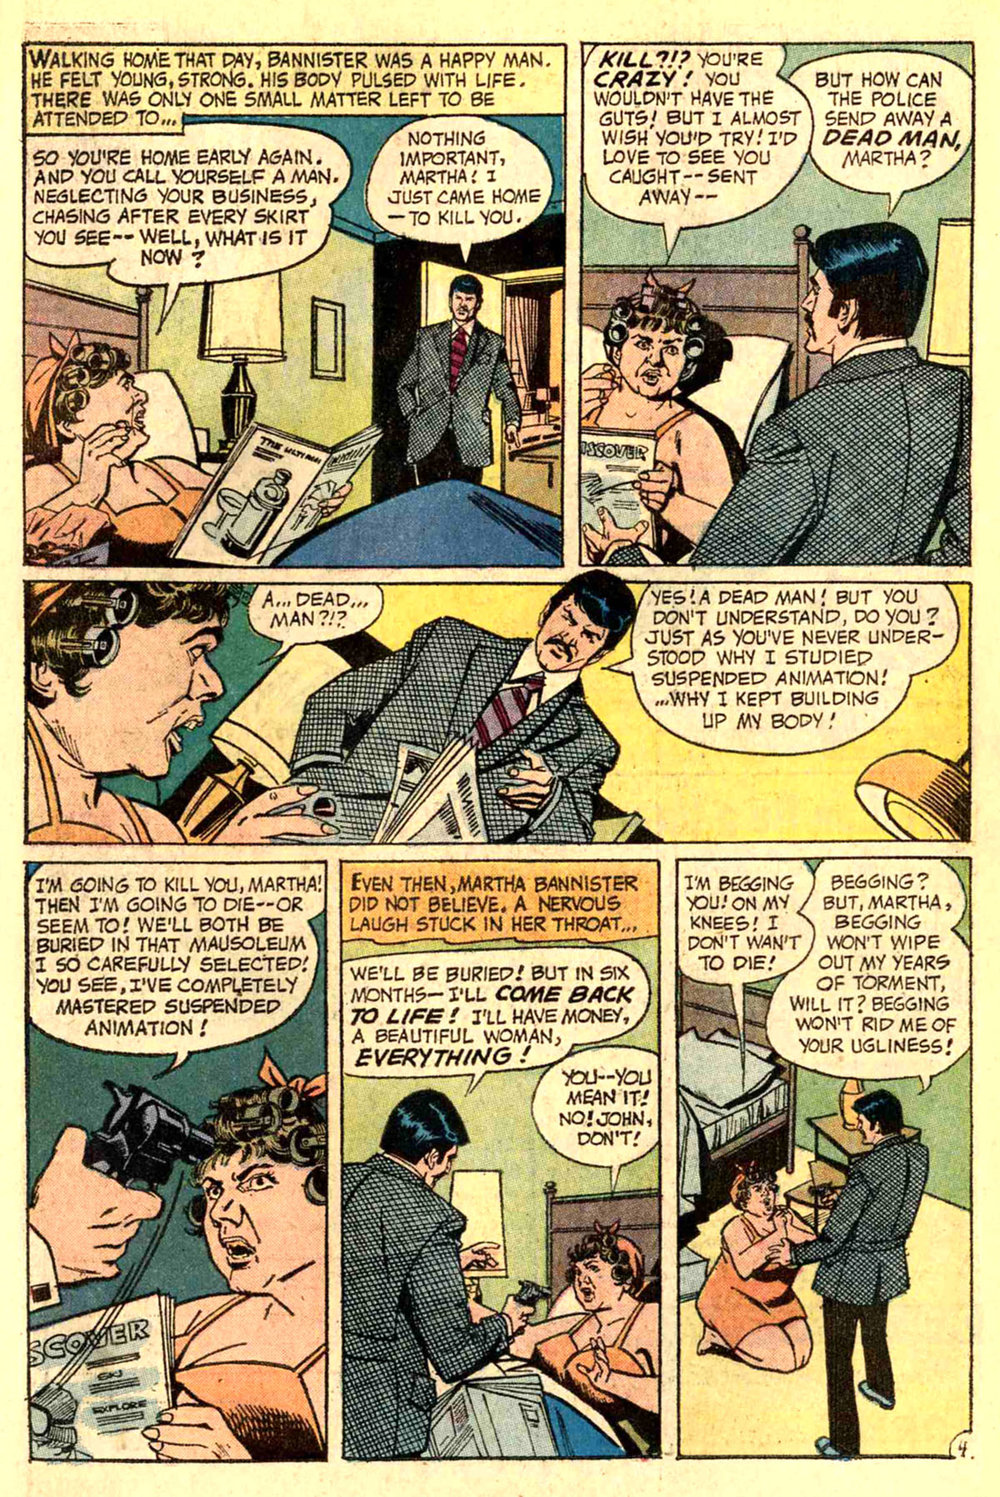 House of Mystery (1951) #210 pg25, art by Jose Delbo.